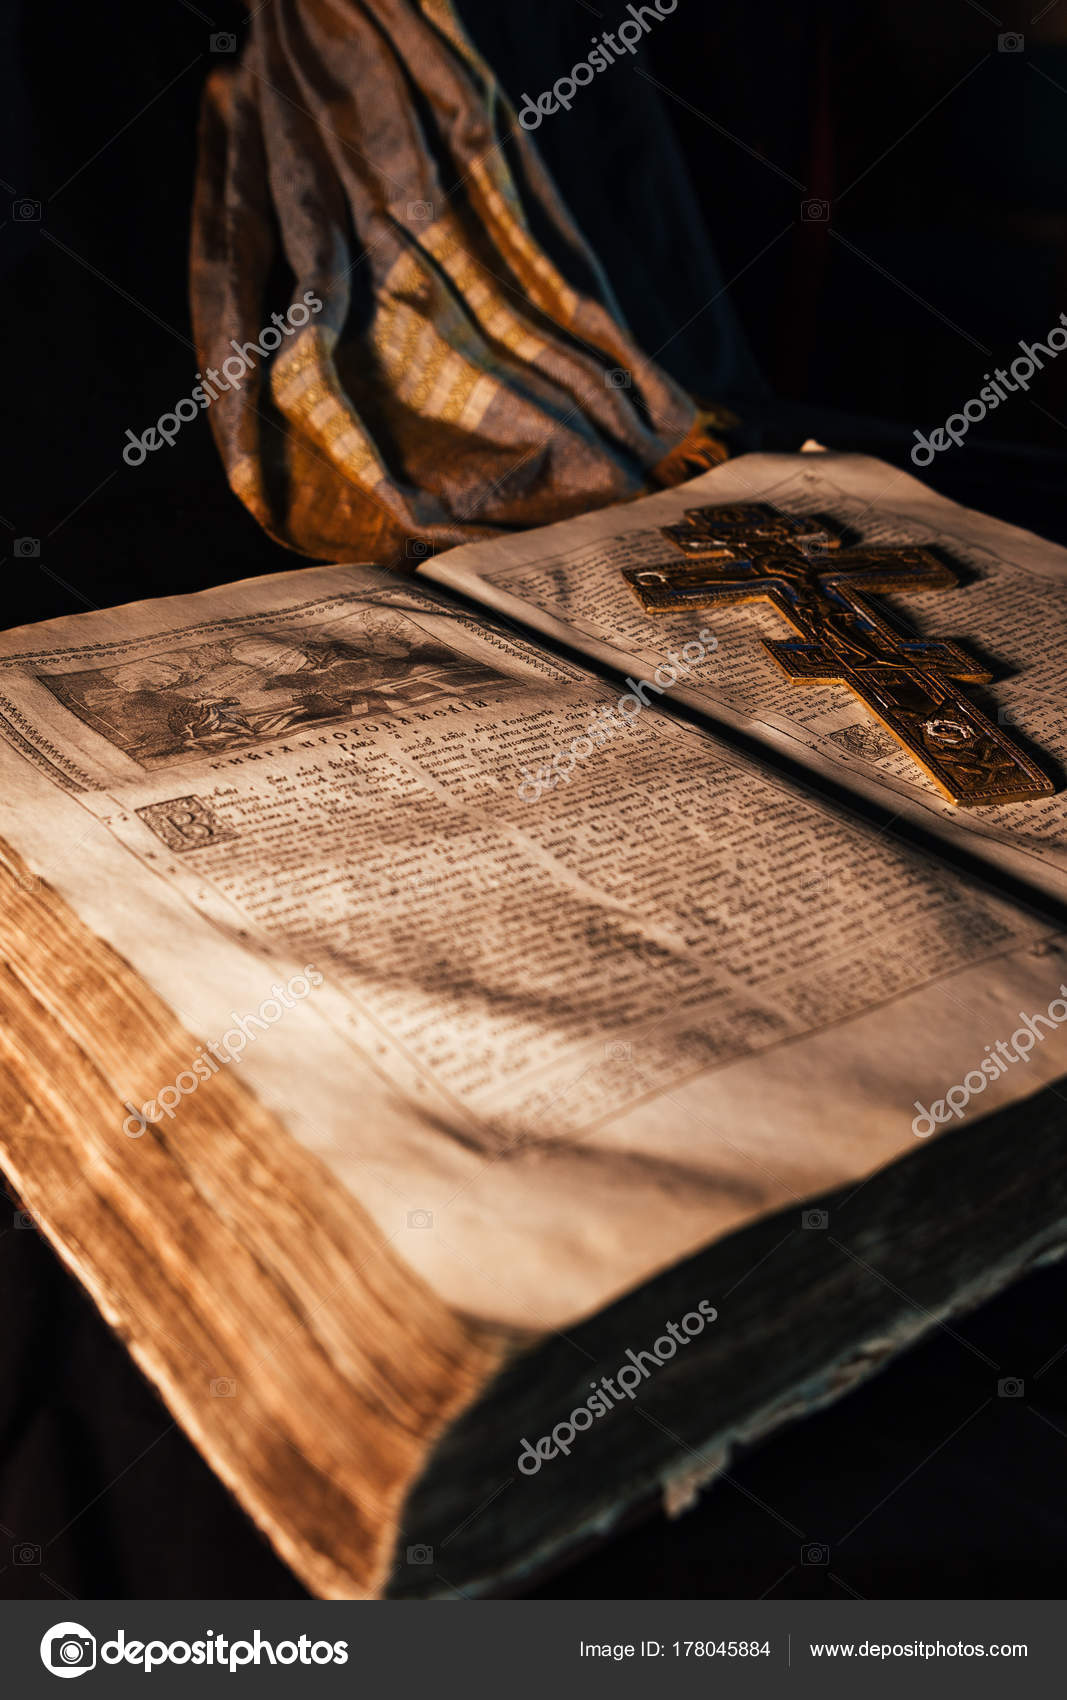 Old Russian orthodox bible on the table with a gold cross